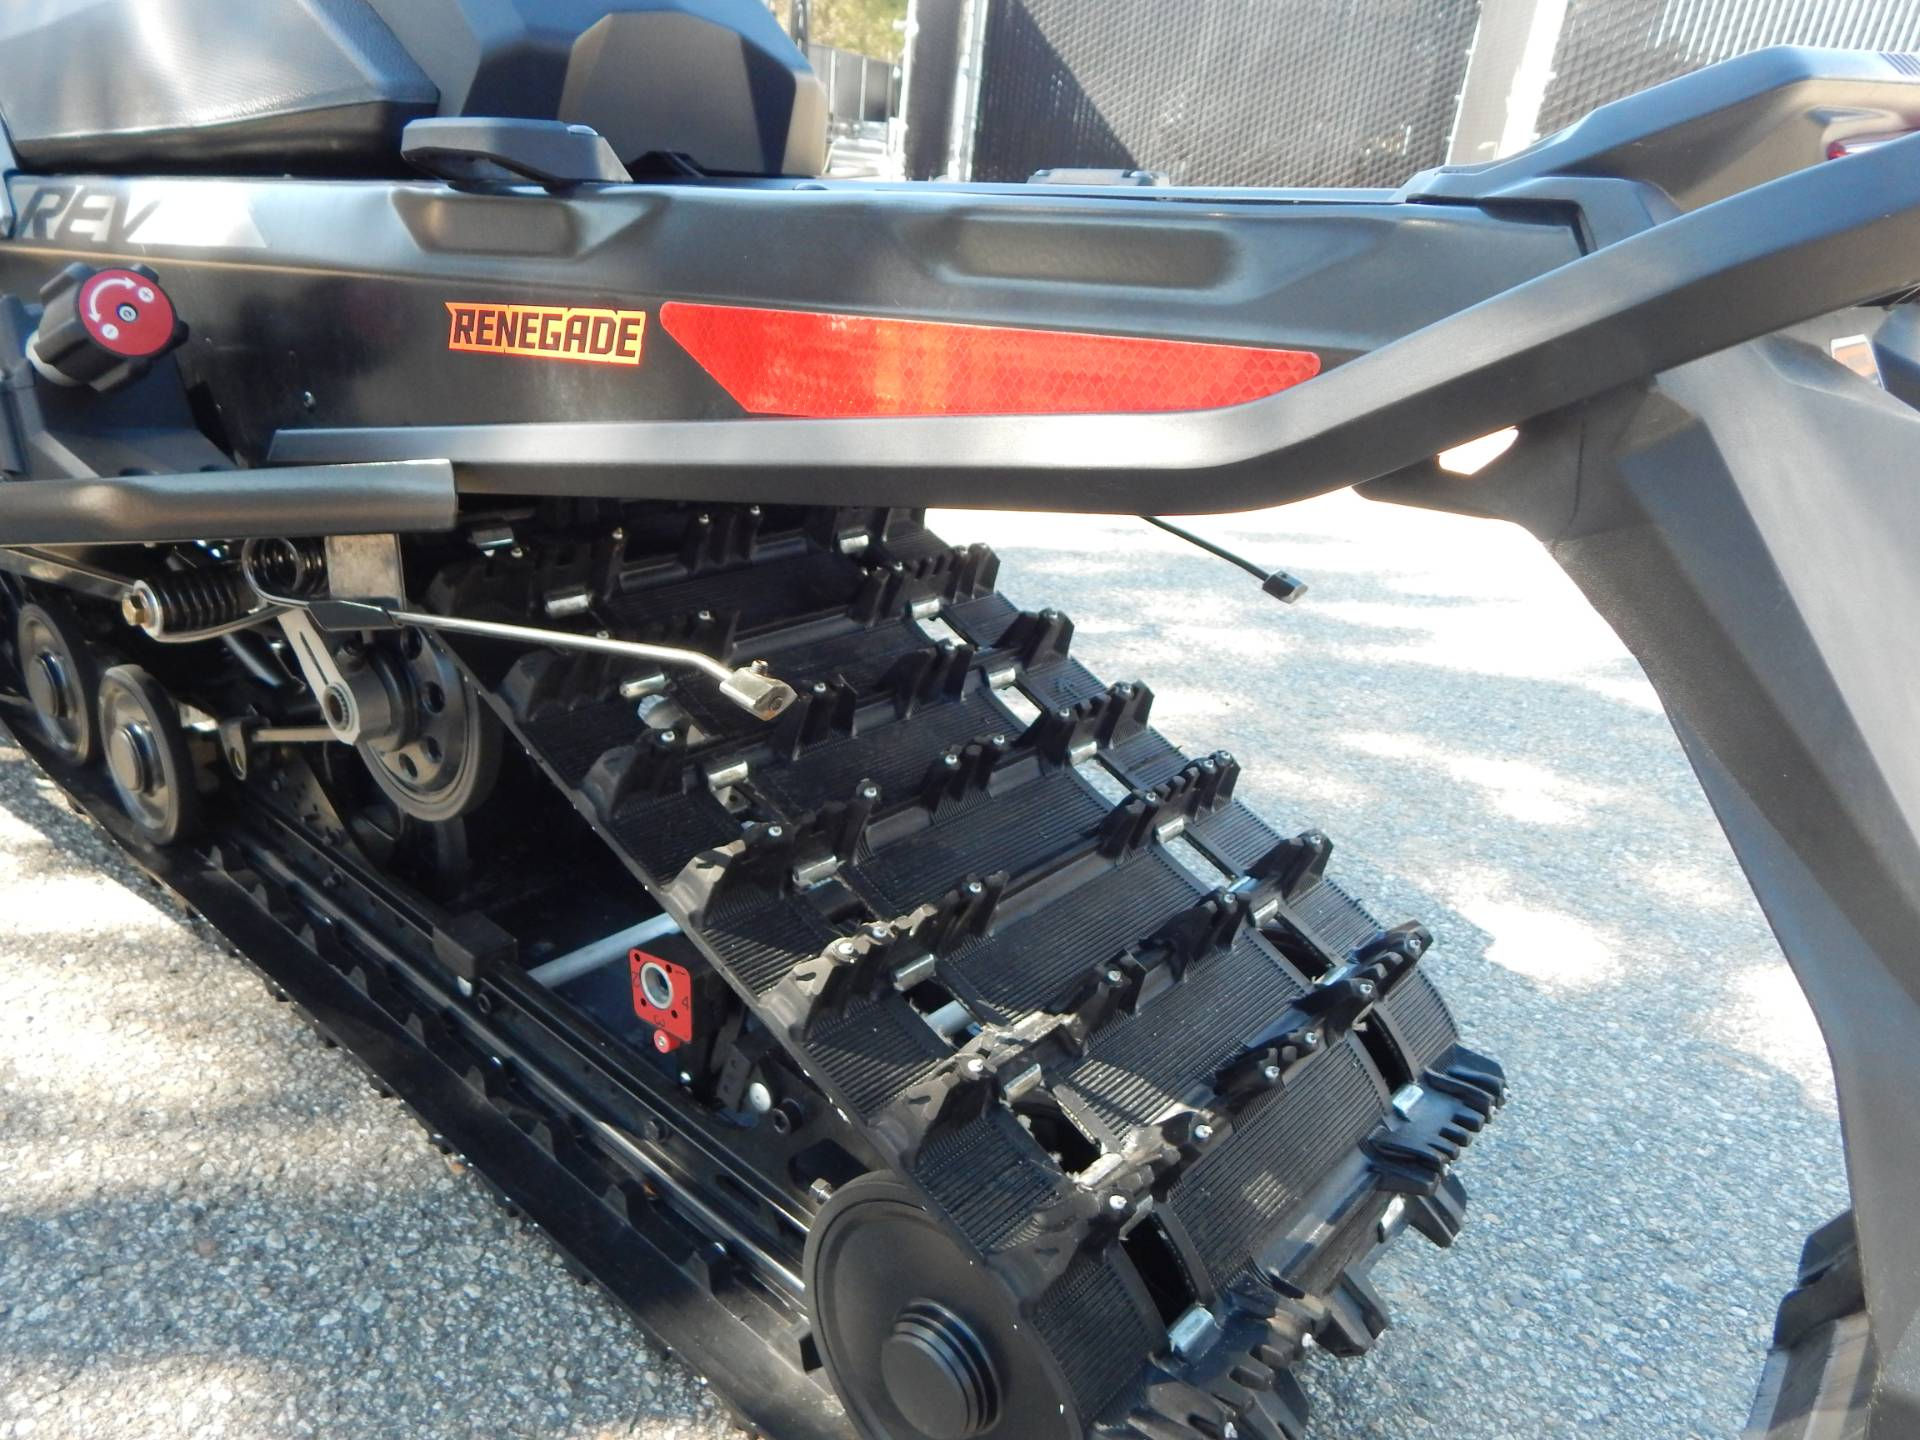 2020 Ski-Doo Renegade X-RS 850 E-Tec in Concord, New Hampshire - Photo 12